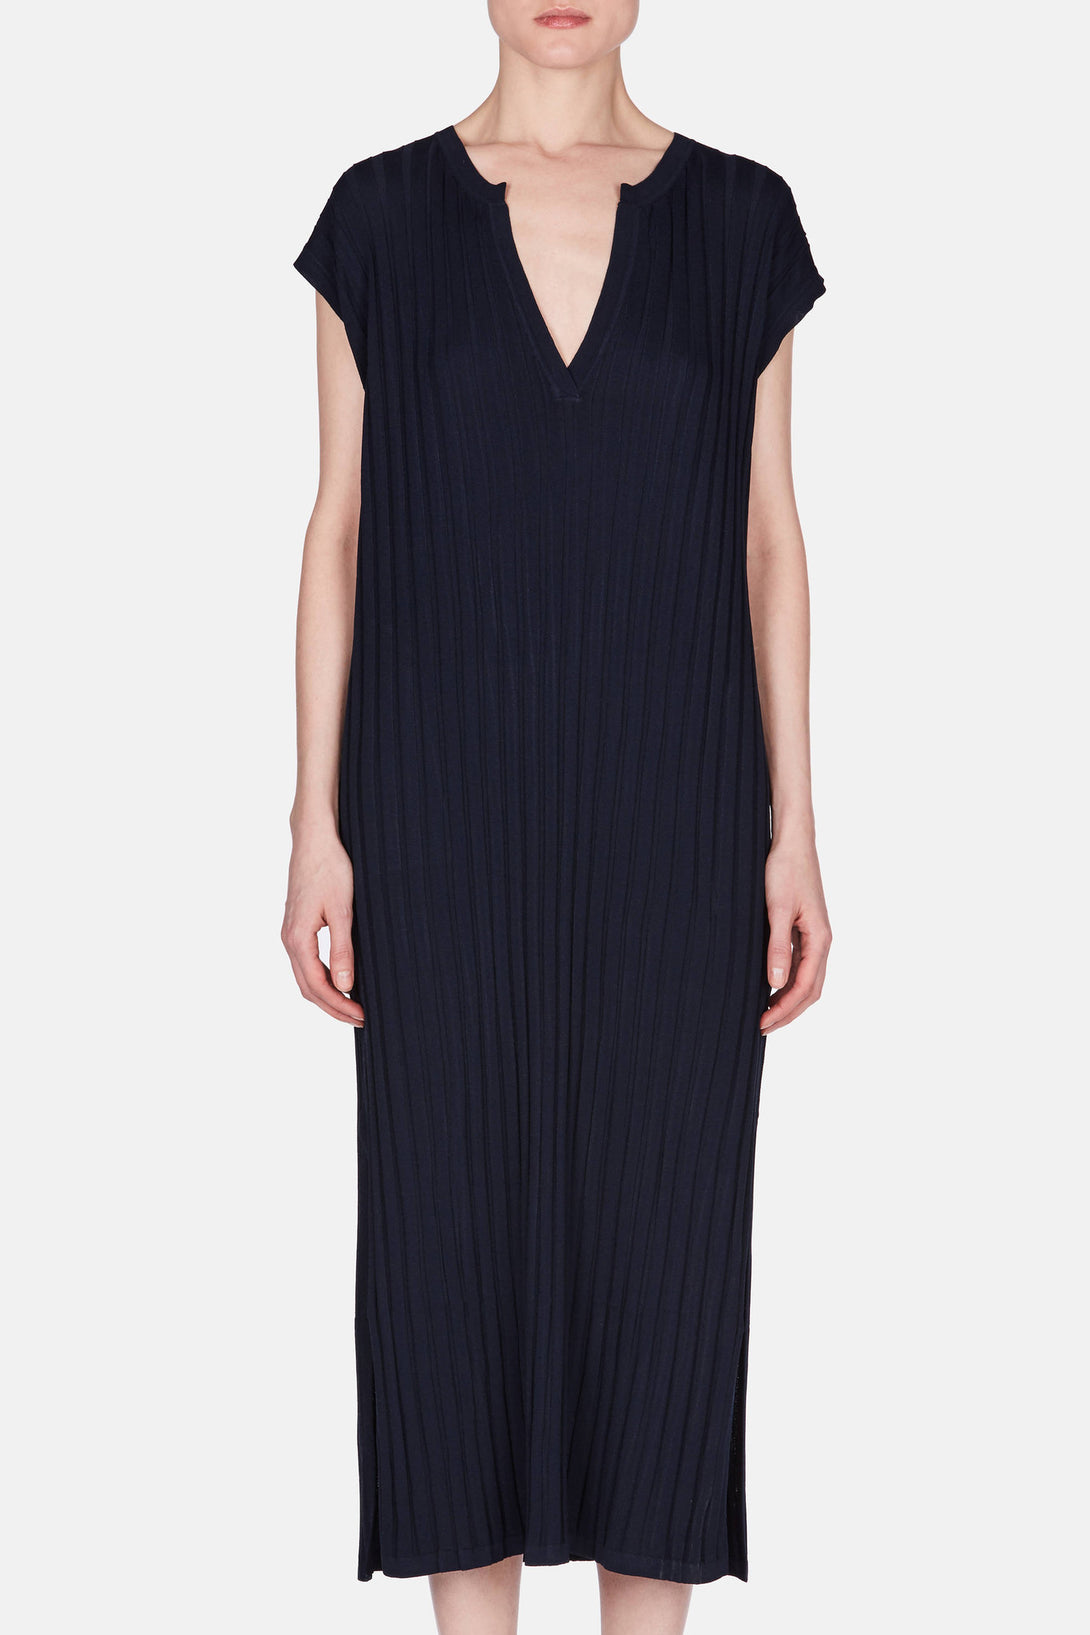 Bahai Knit Dress - Dark Navy